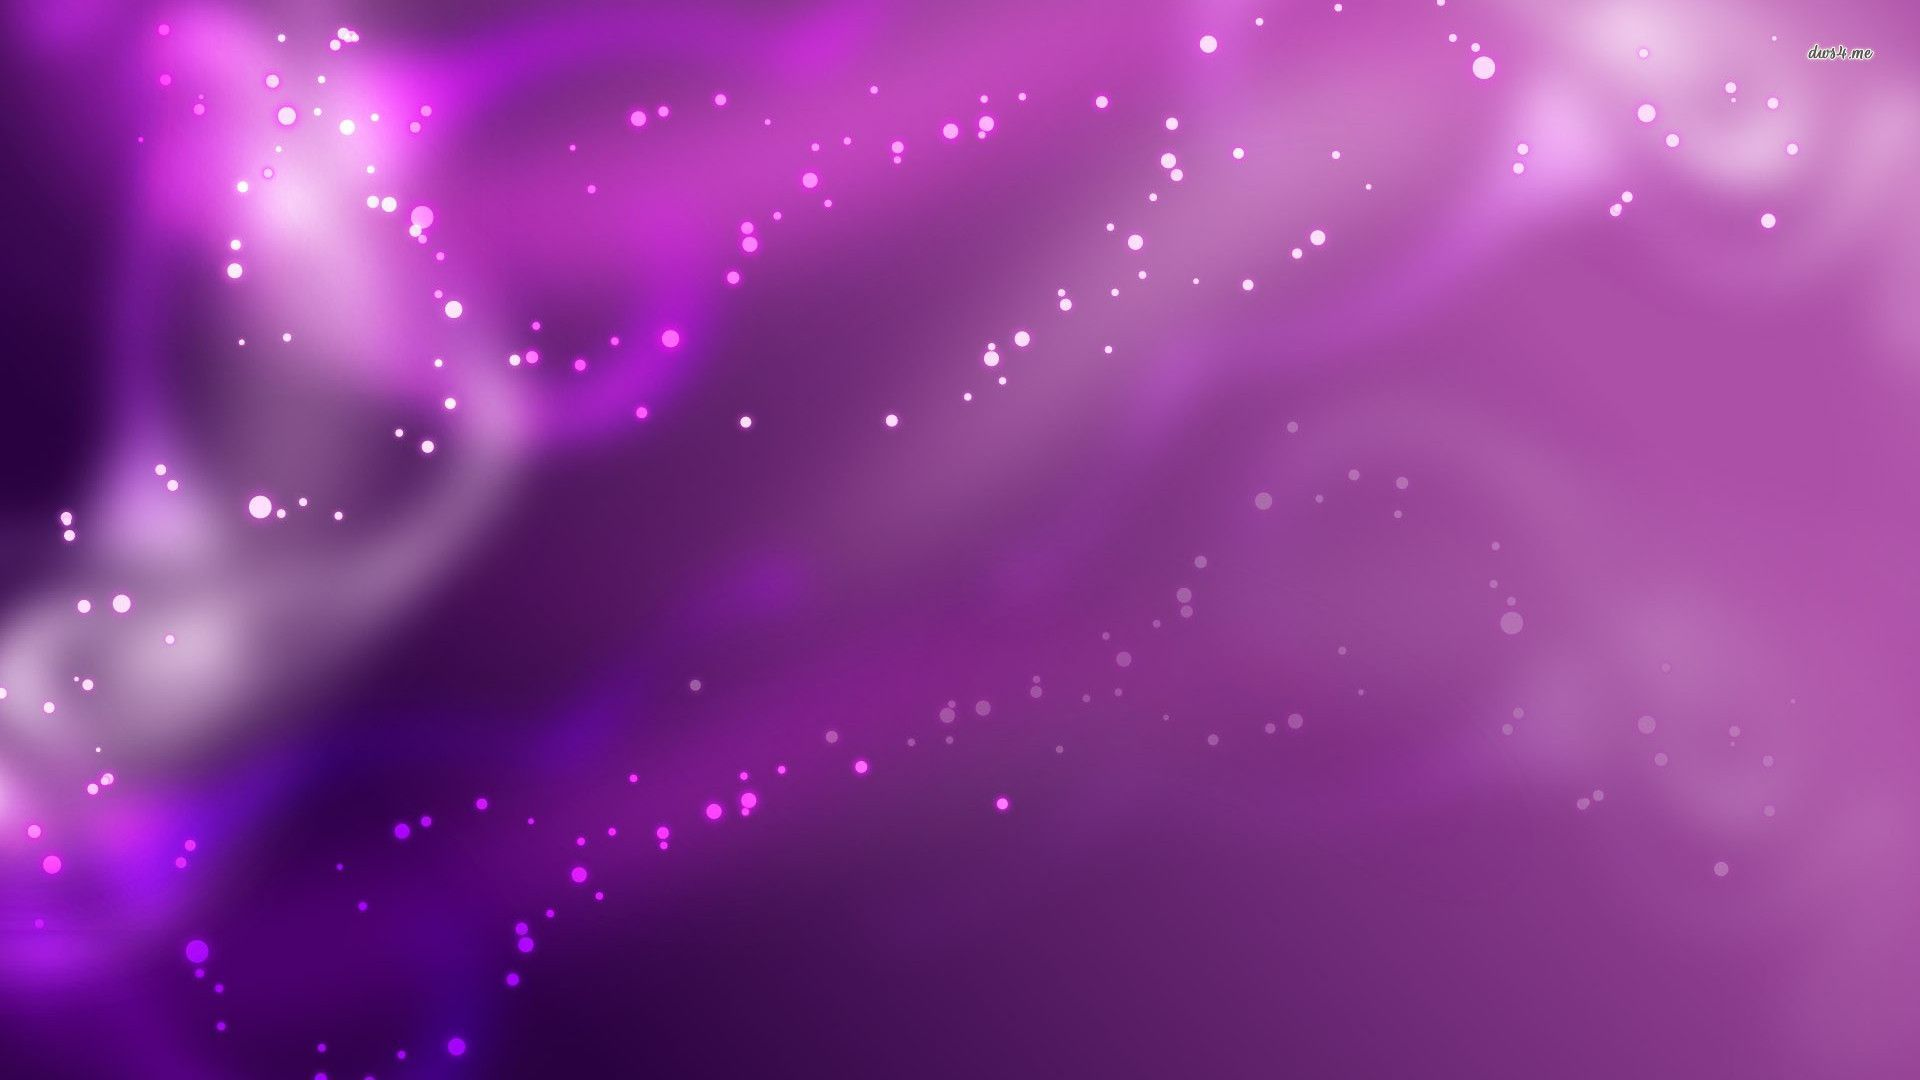 Light purple wallpaper pattern - Find This Pin And More On Wallpapers 4k By Therionband